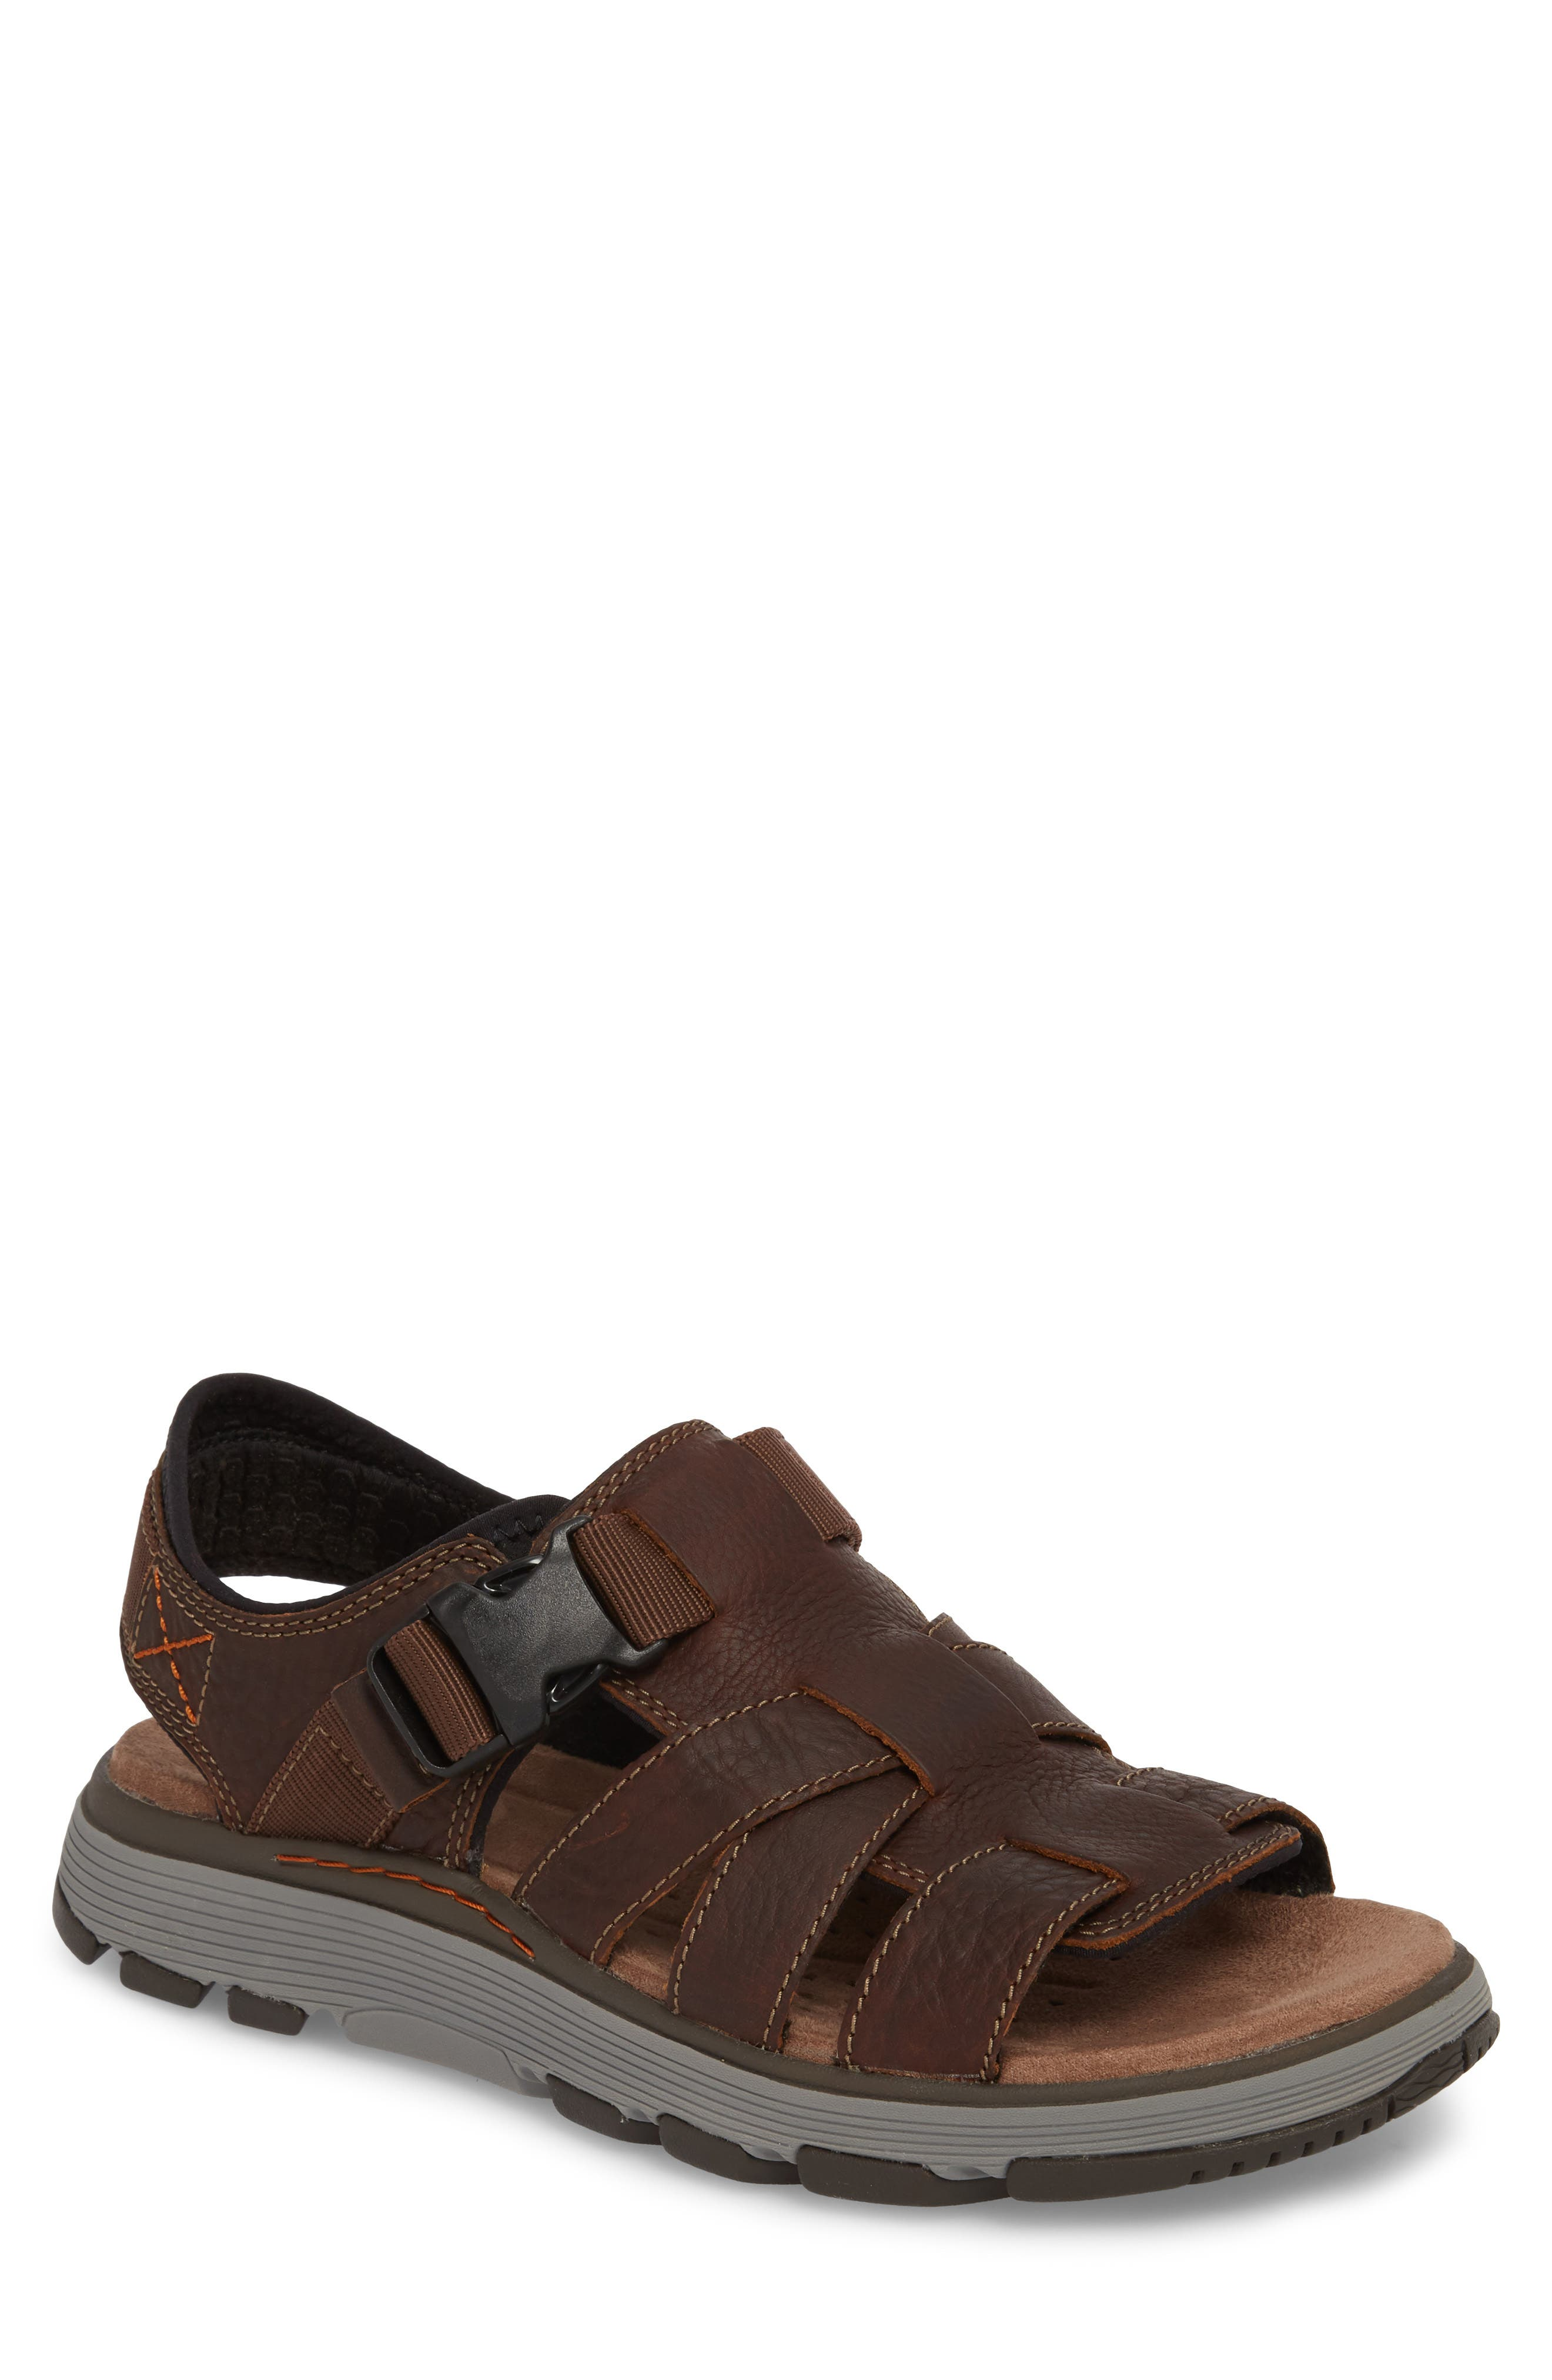 Clarks<sup>®</sup> Untrek Cove Fisherman Sandal,                         Main,                         color,